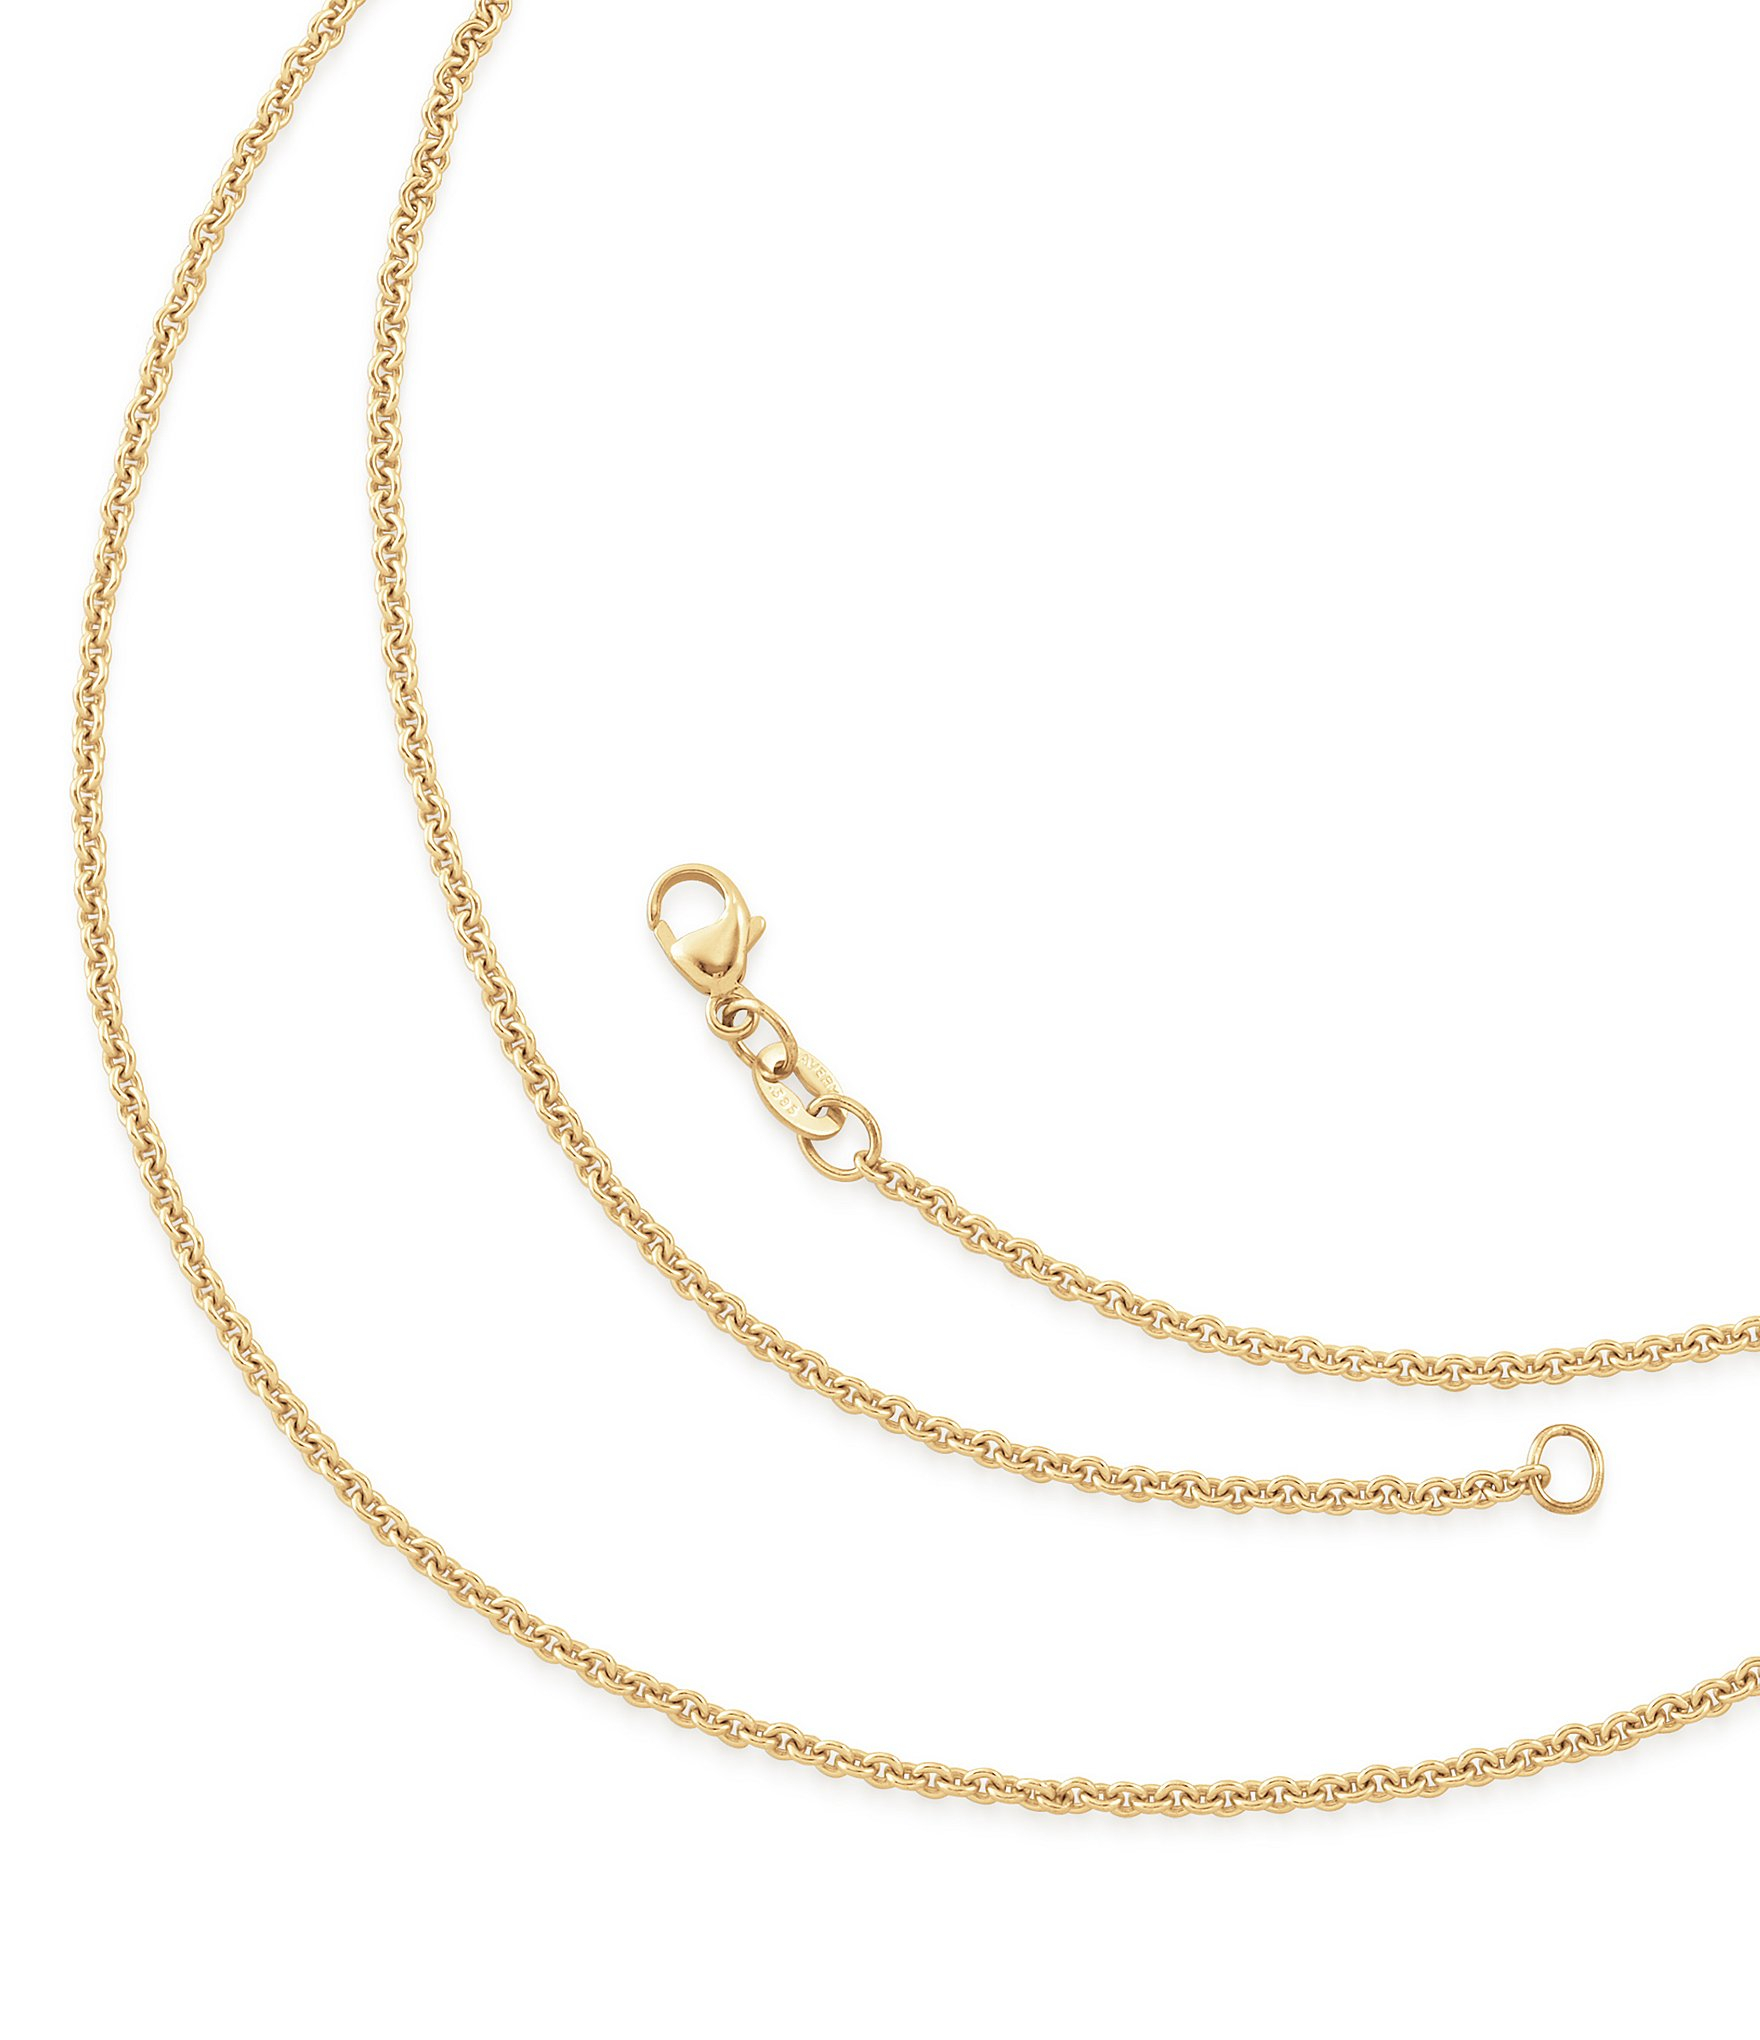 James Avery Light Cable Chain Pertaining To Most Recent Cable Chain Necklaces (Gallery 8 of 25)